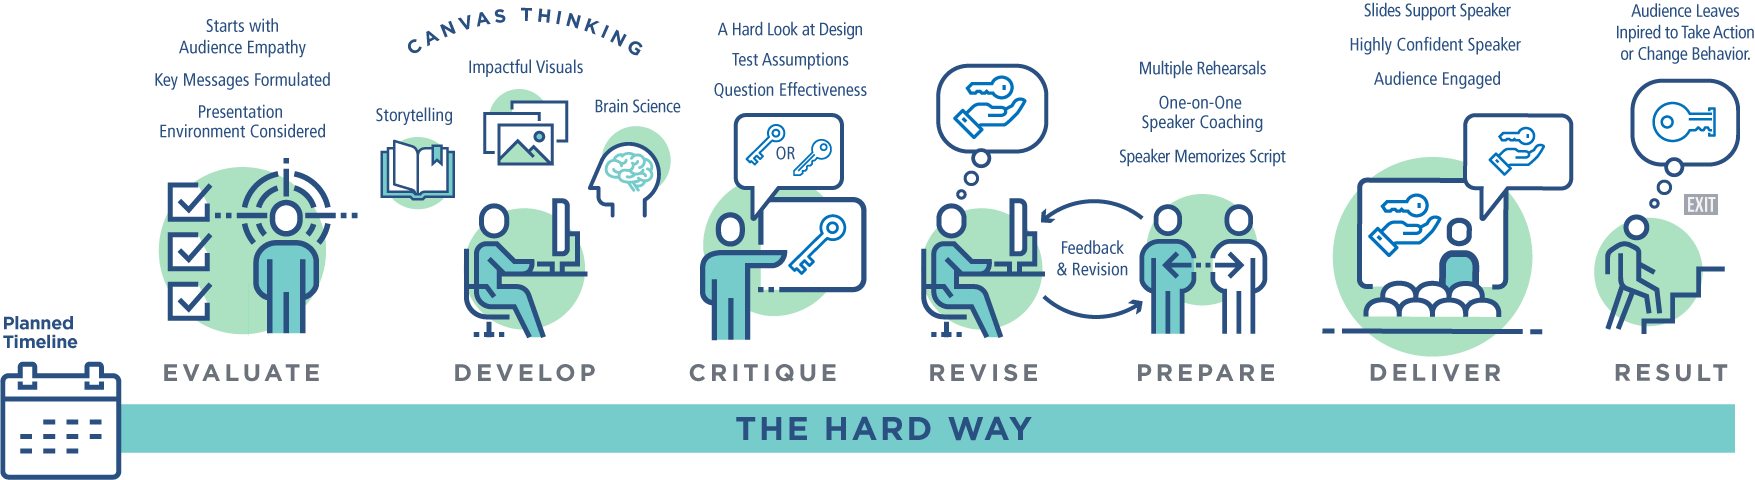 The Hard Way to Design Presentations (click to enlarge)